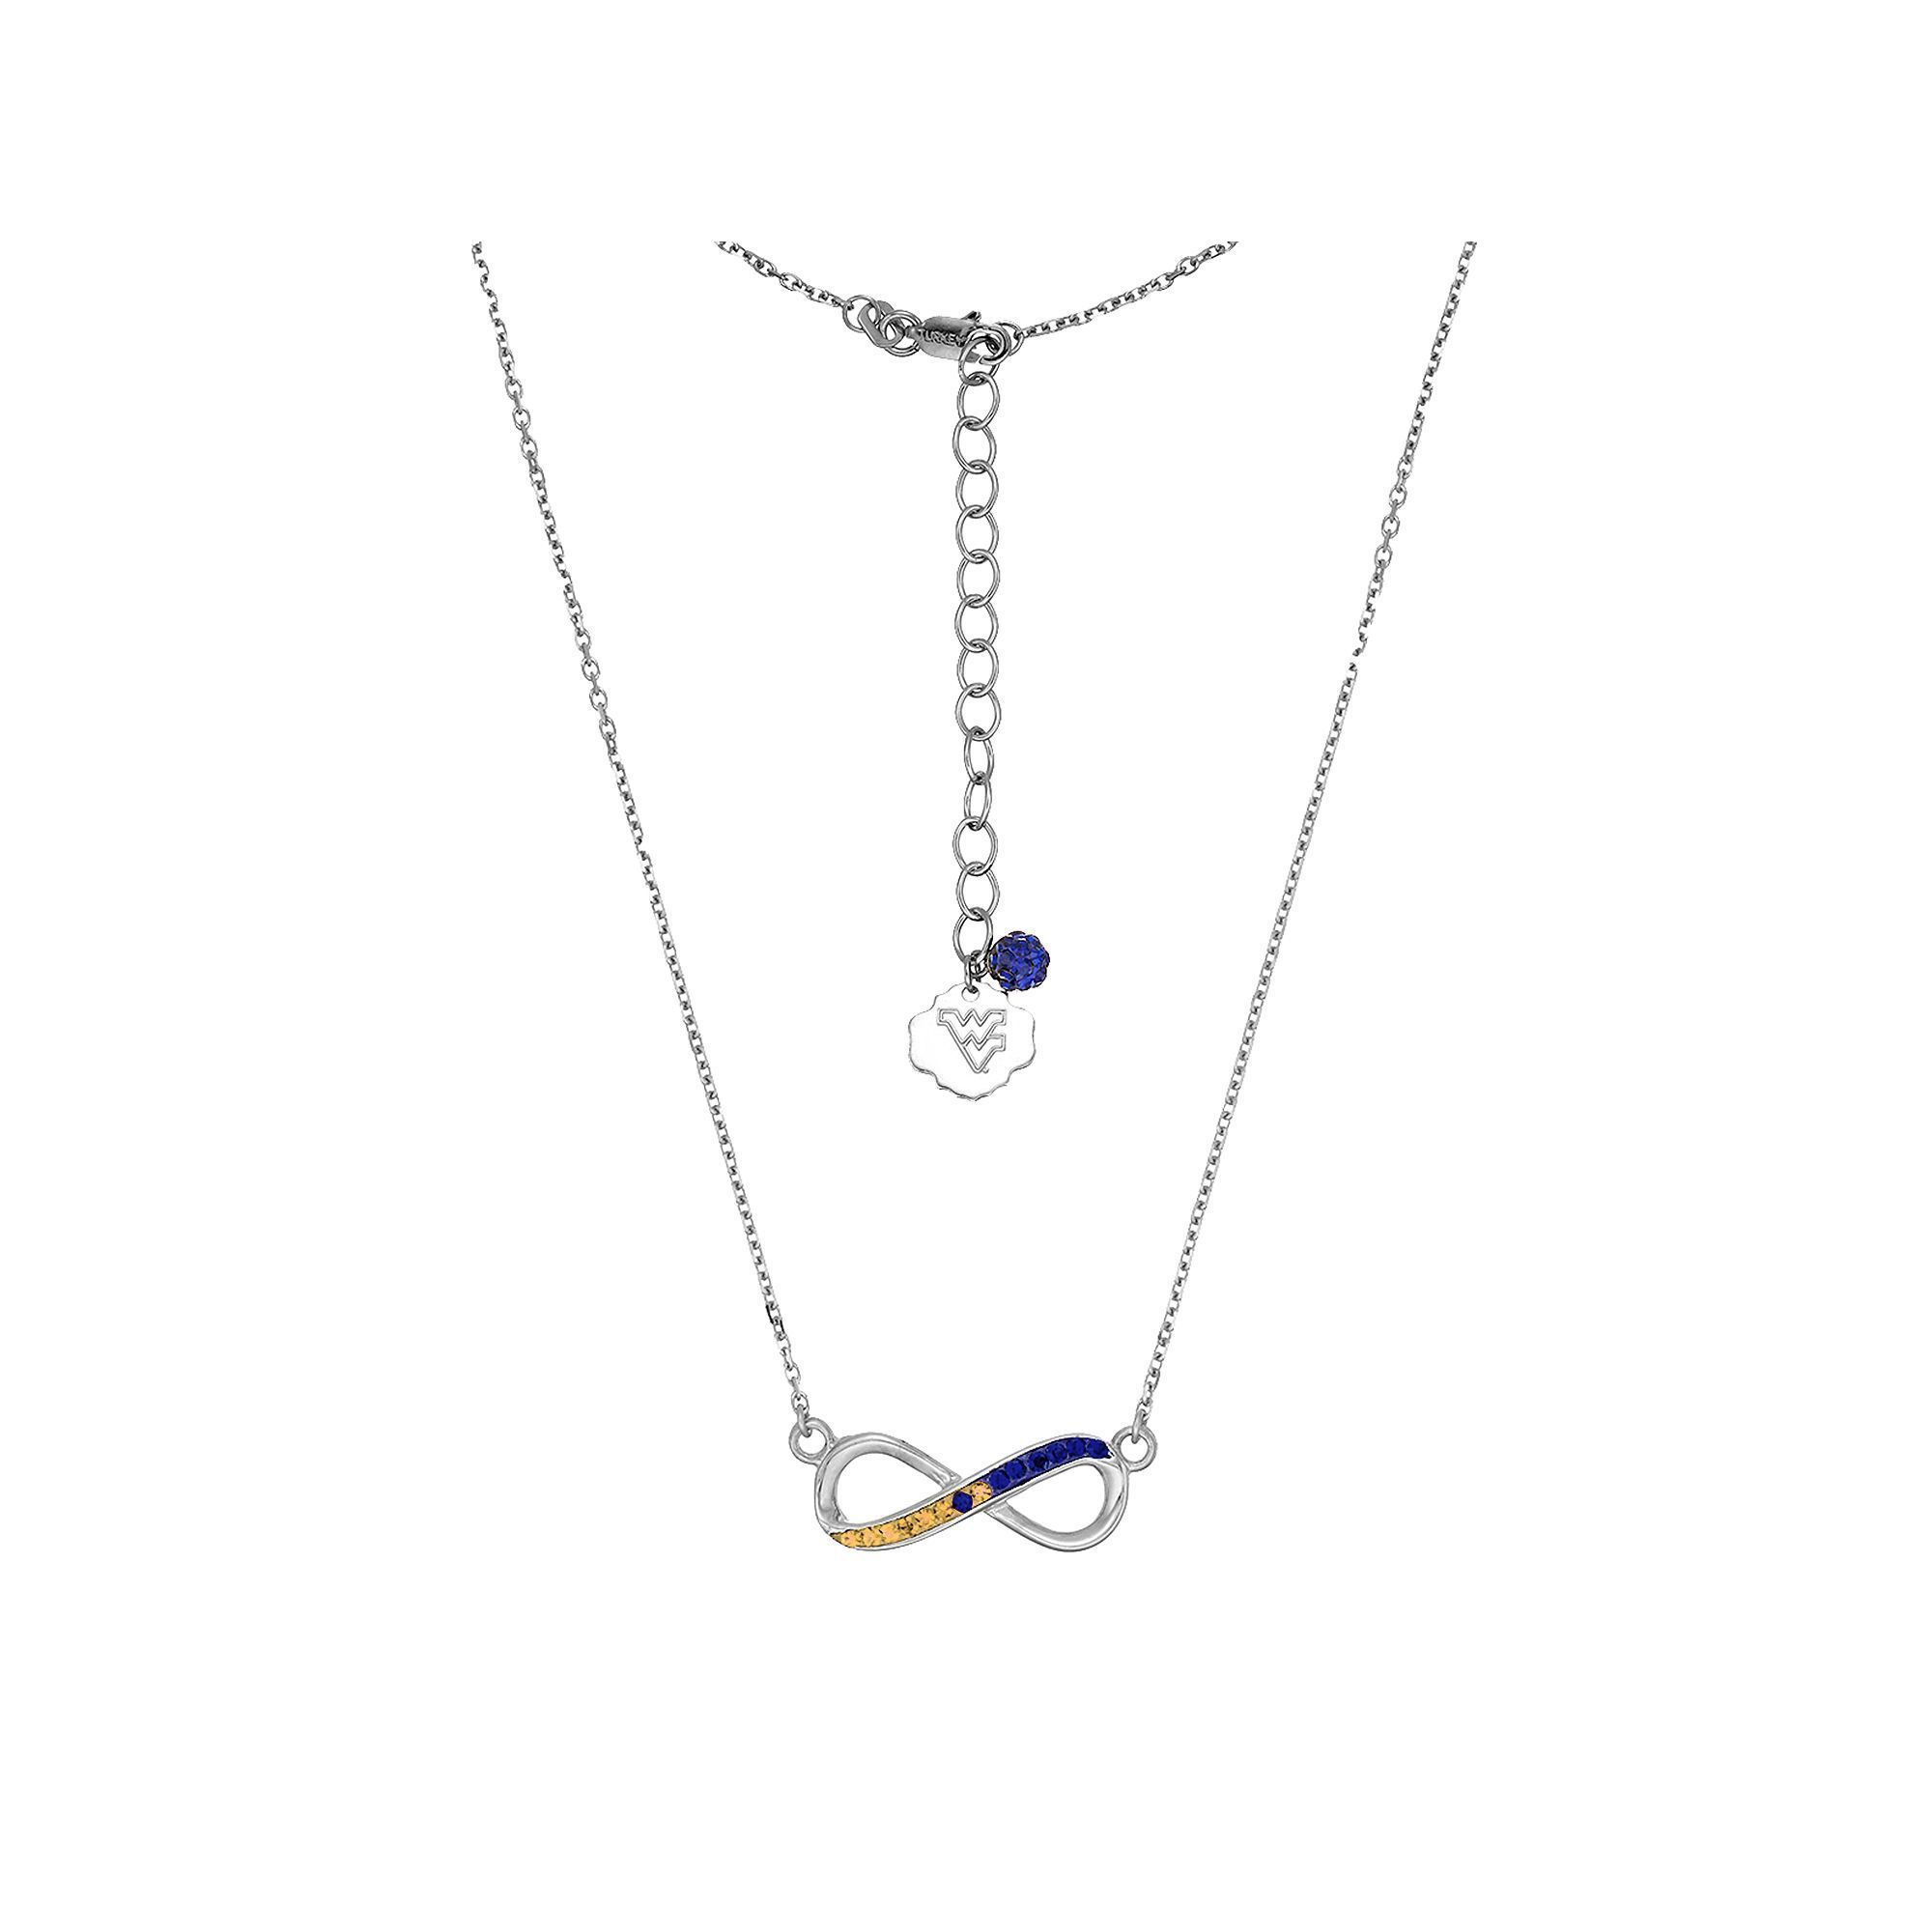 of and products modern loop necklace plain christian a for may look sterling symbolism this pn simple lovers crafted powerful pendant message but cross love it silver infinity aeravida necklaces religious profoundly details carries